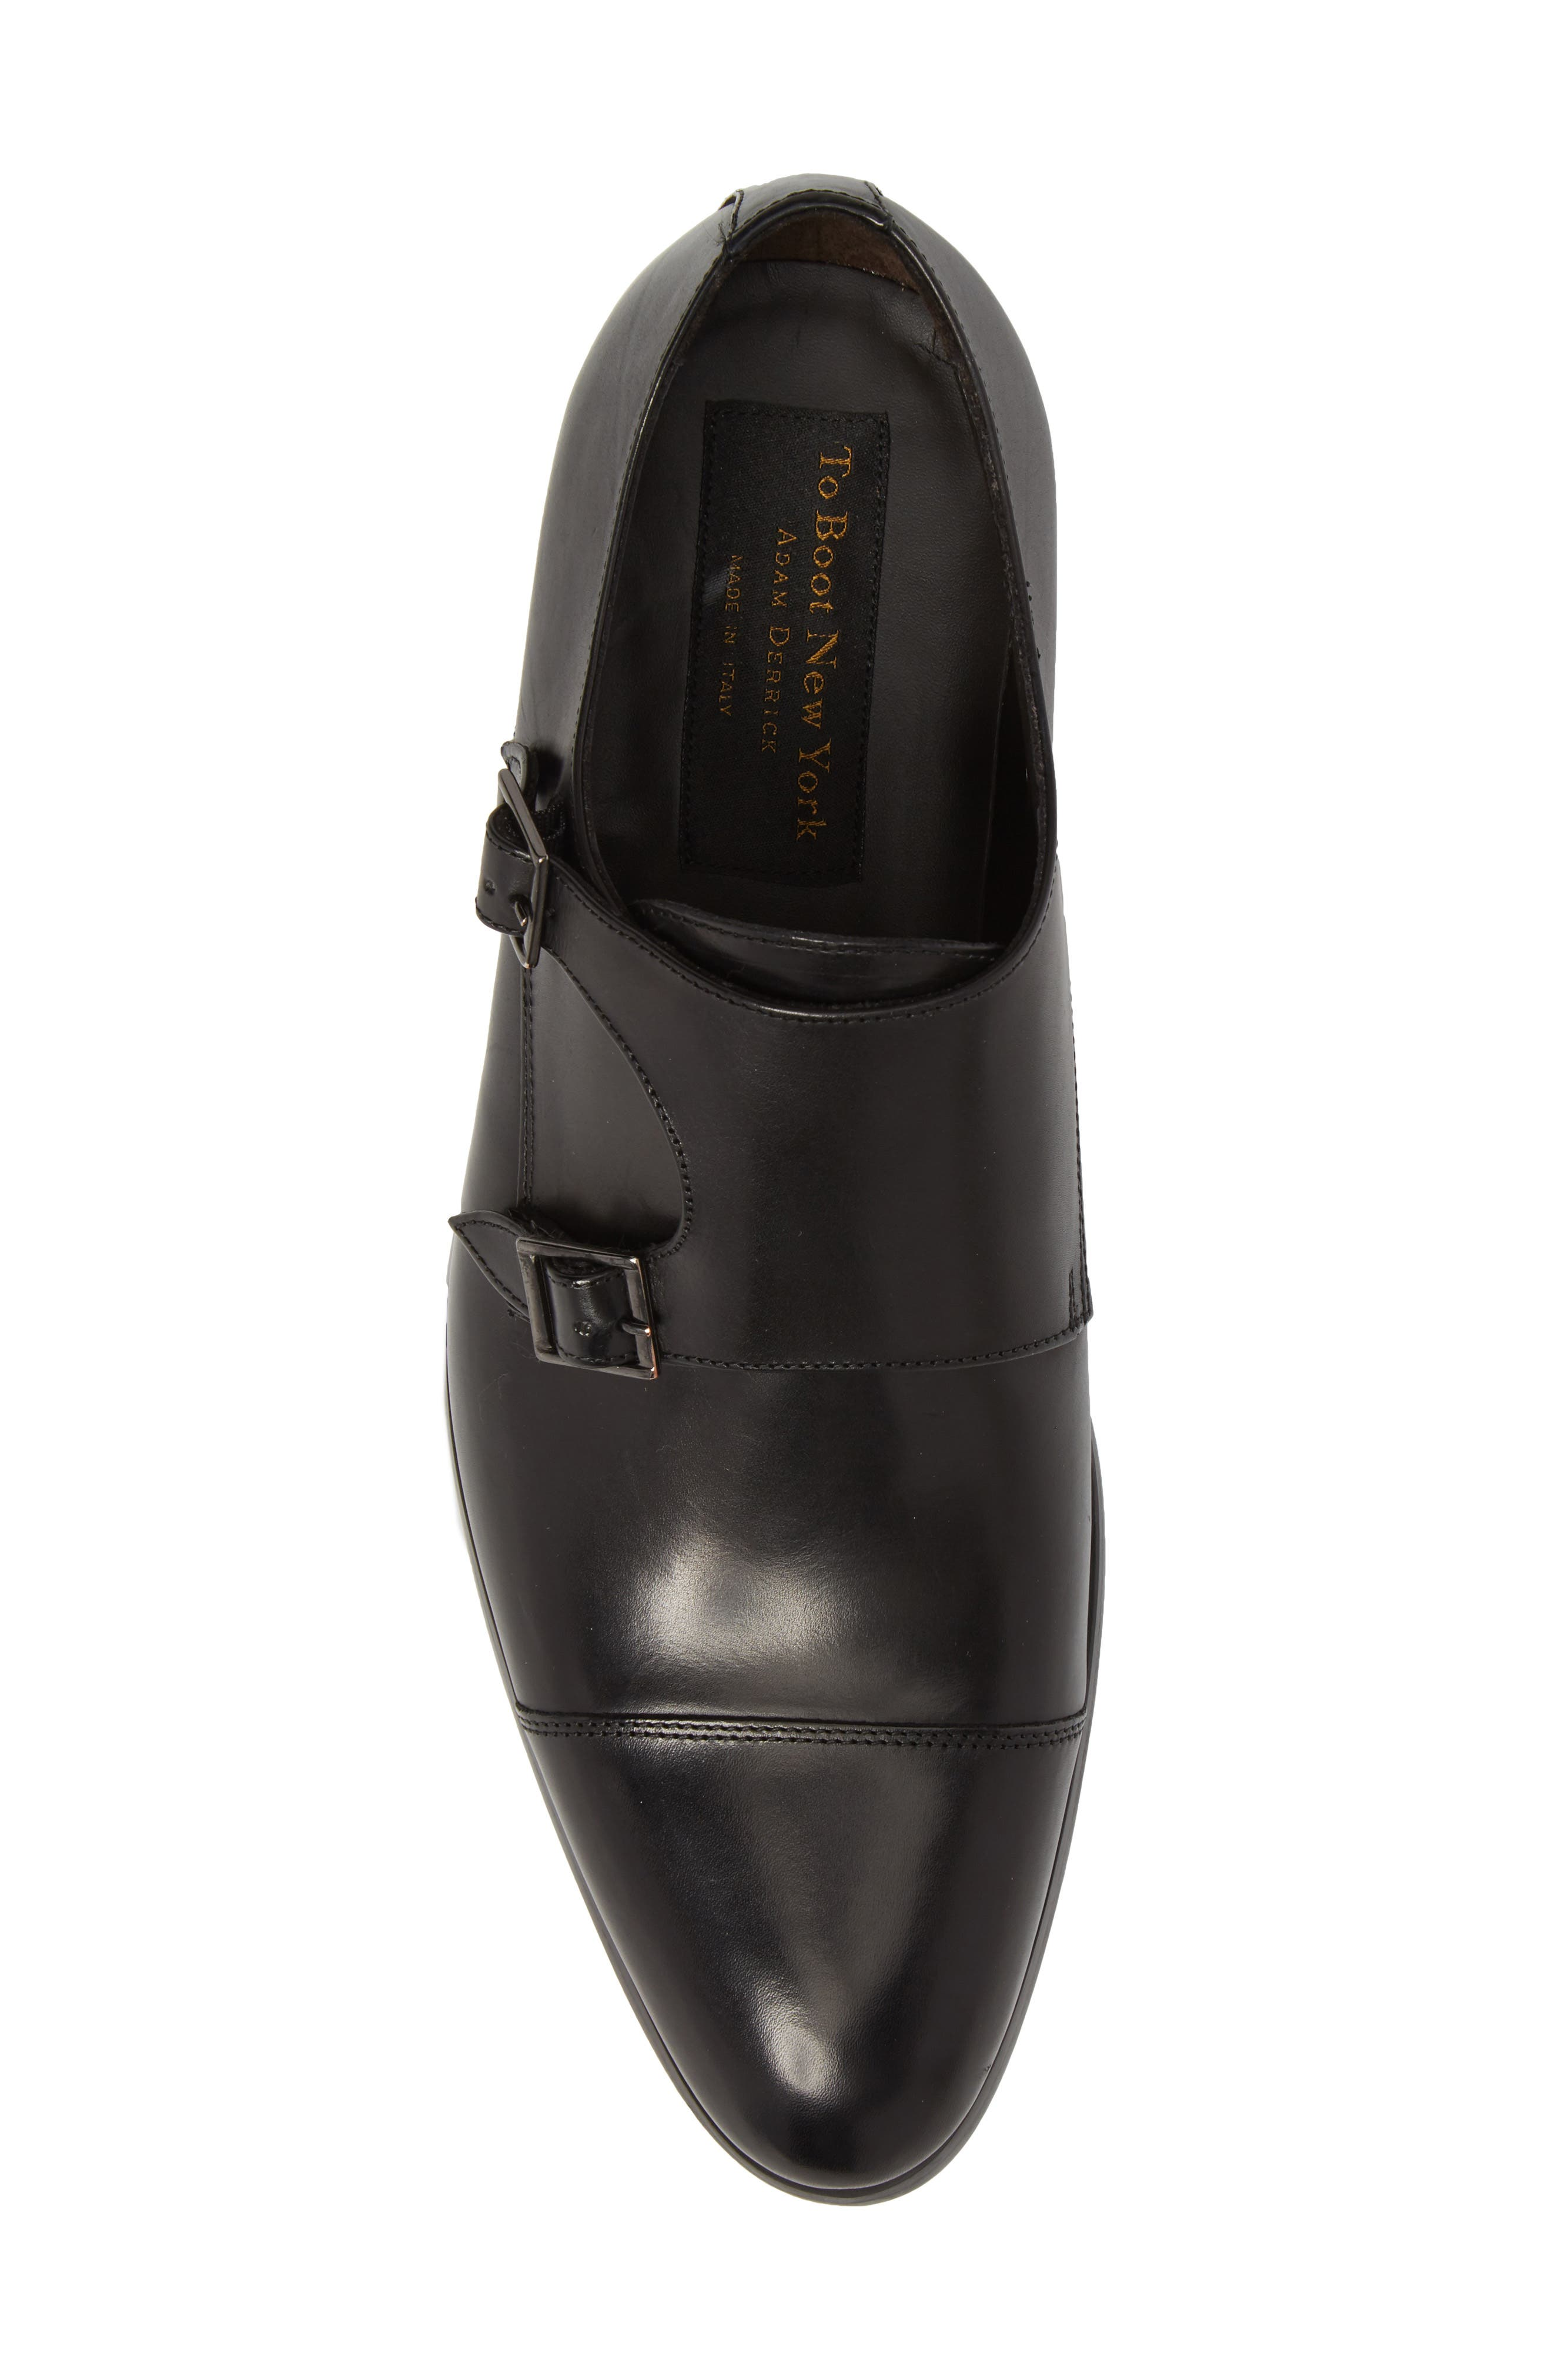 TO BOOT NEW YORK, Bankston Cap Toe Double Strap Monk Shoe, Alternate thumbnail 5, color, BLACK LEATHER